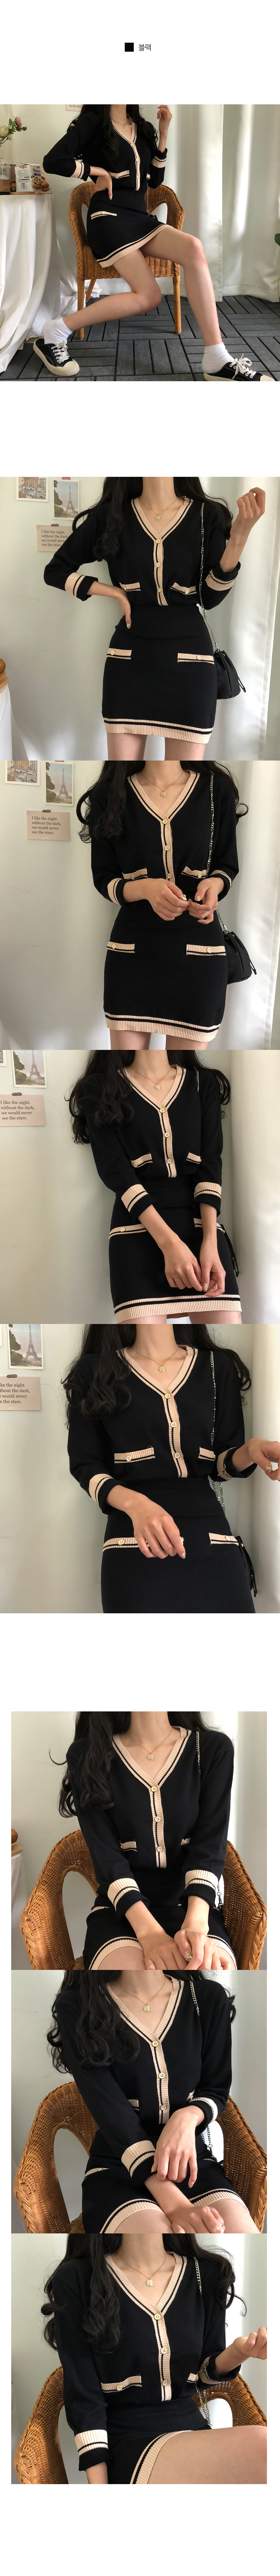 Ari cardigan + knitted skirt two-piece set